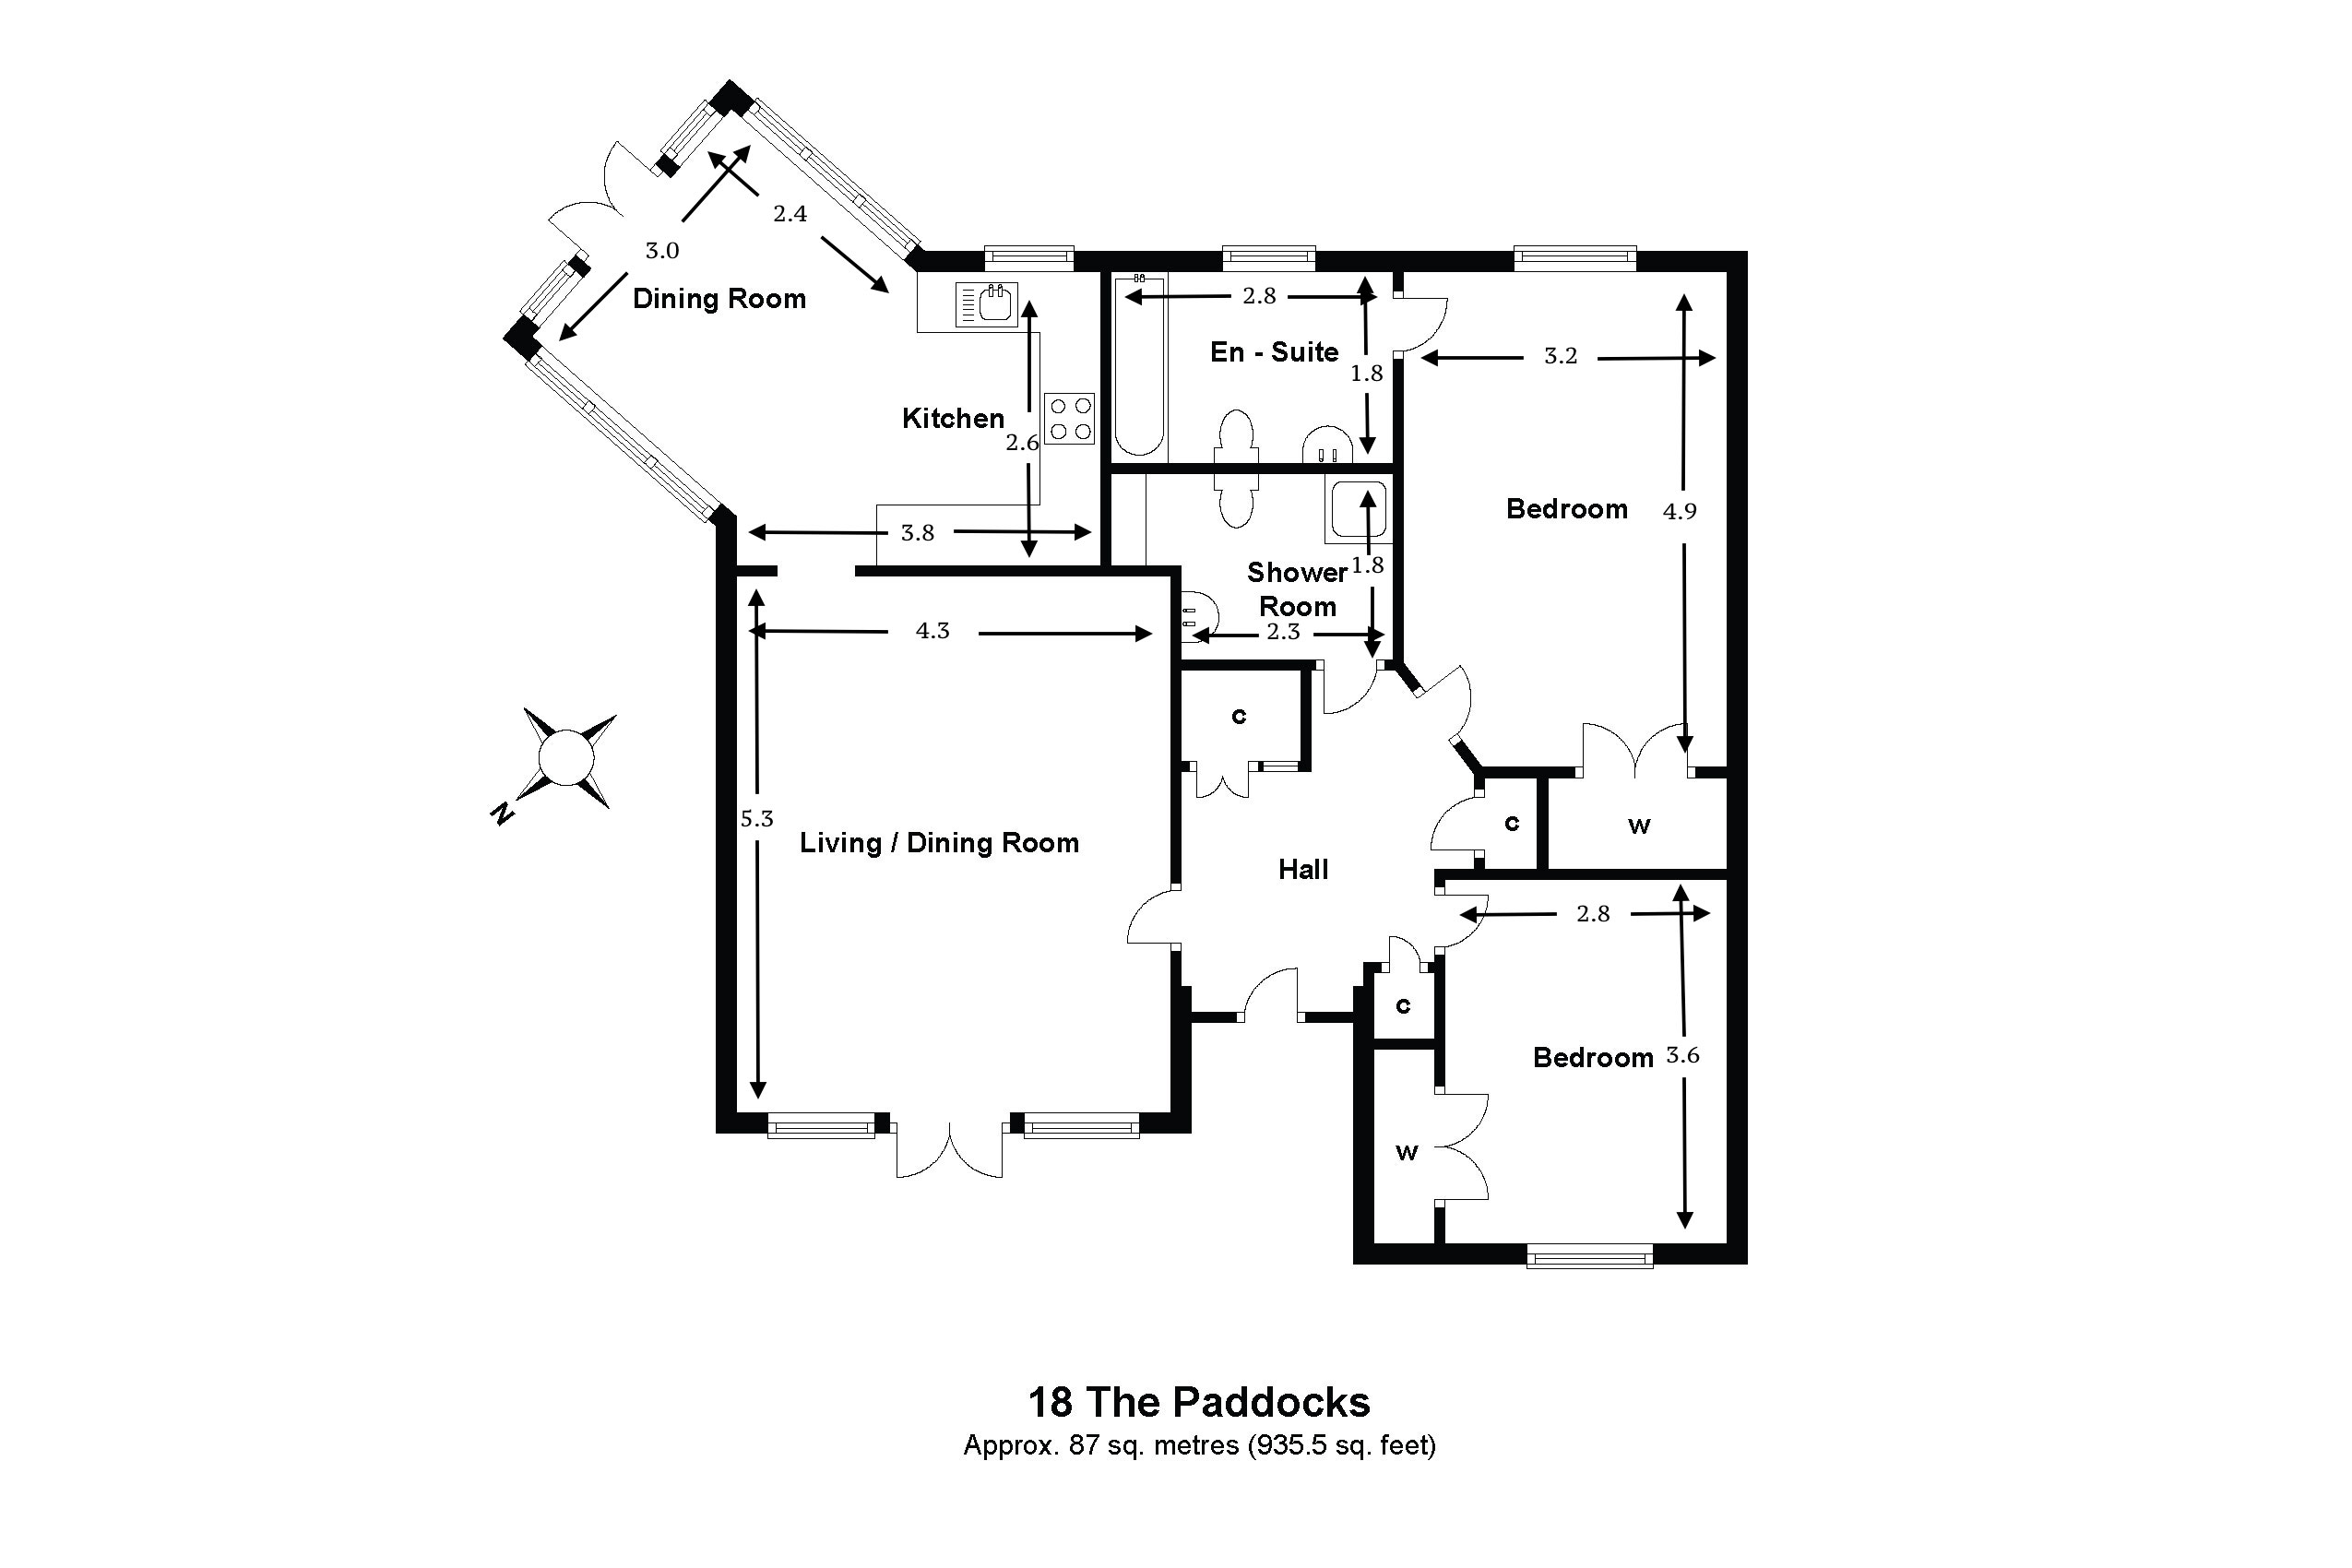 18 The Paddocks Floorplan